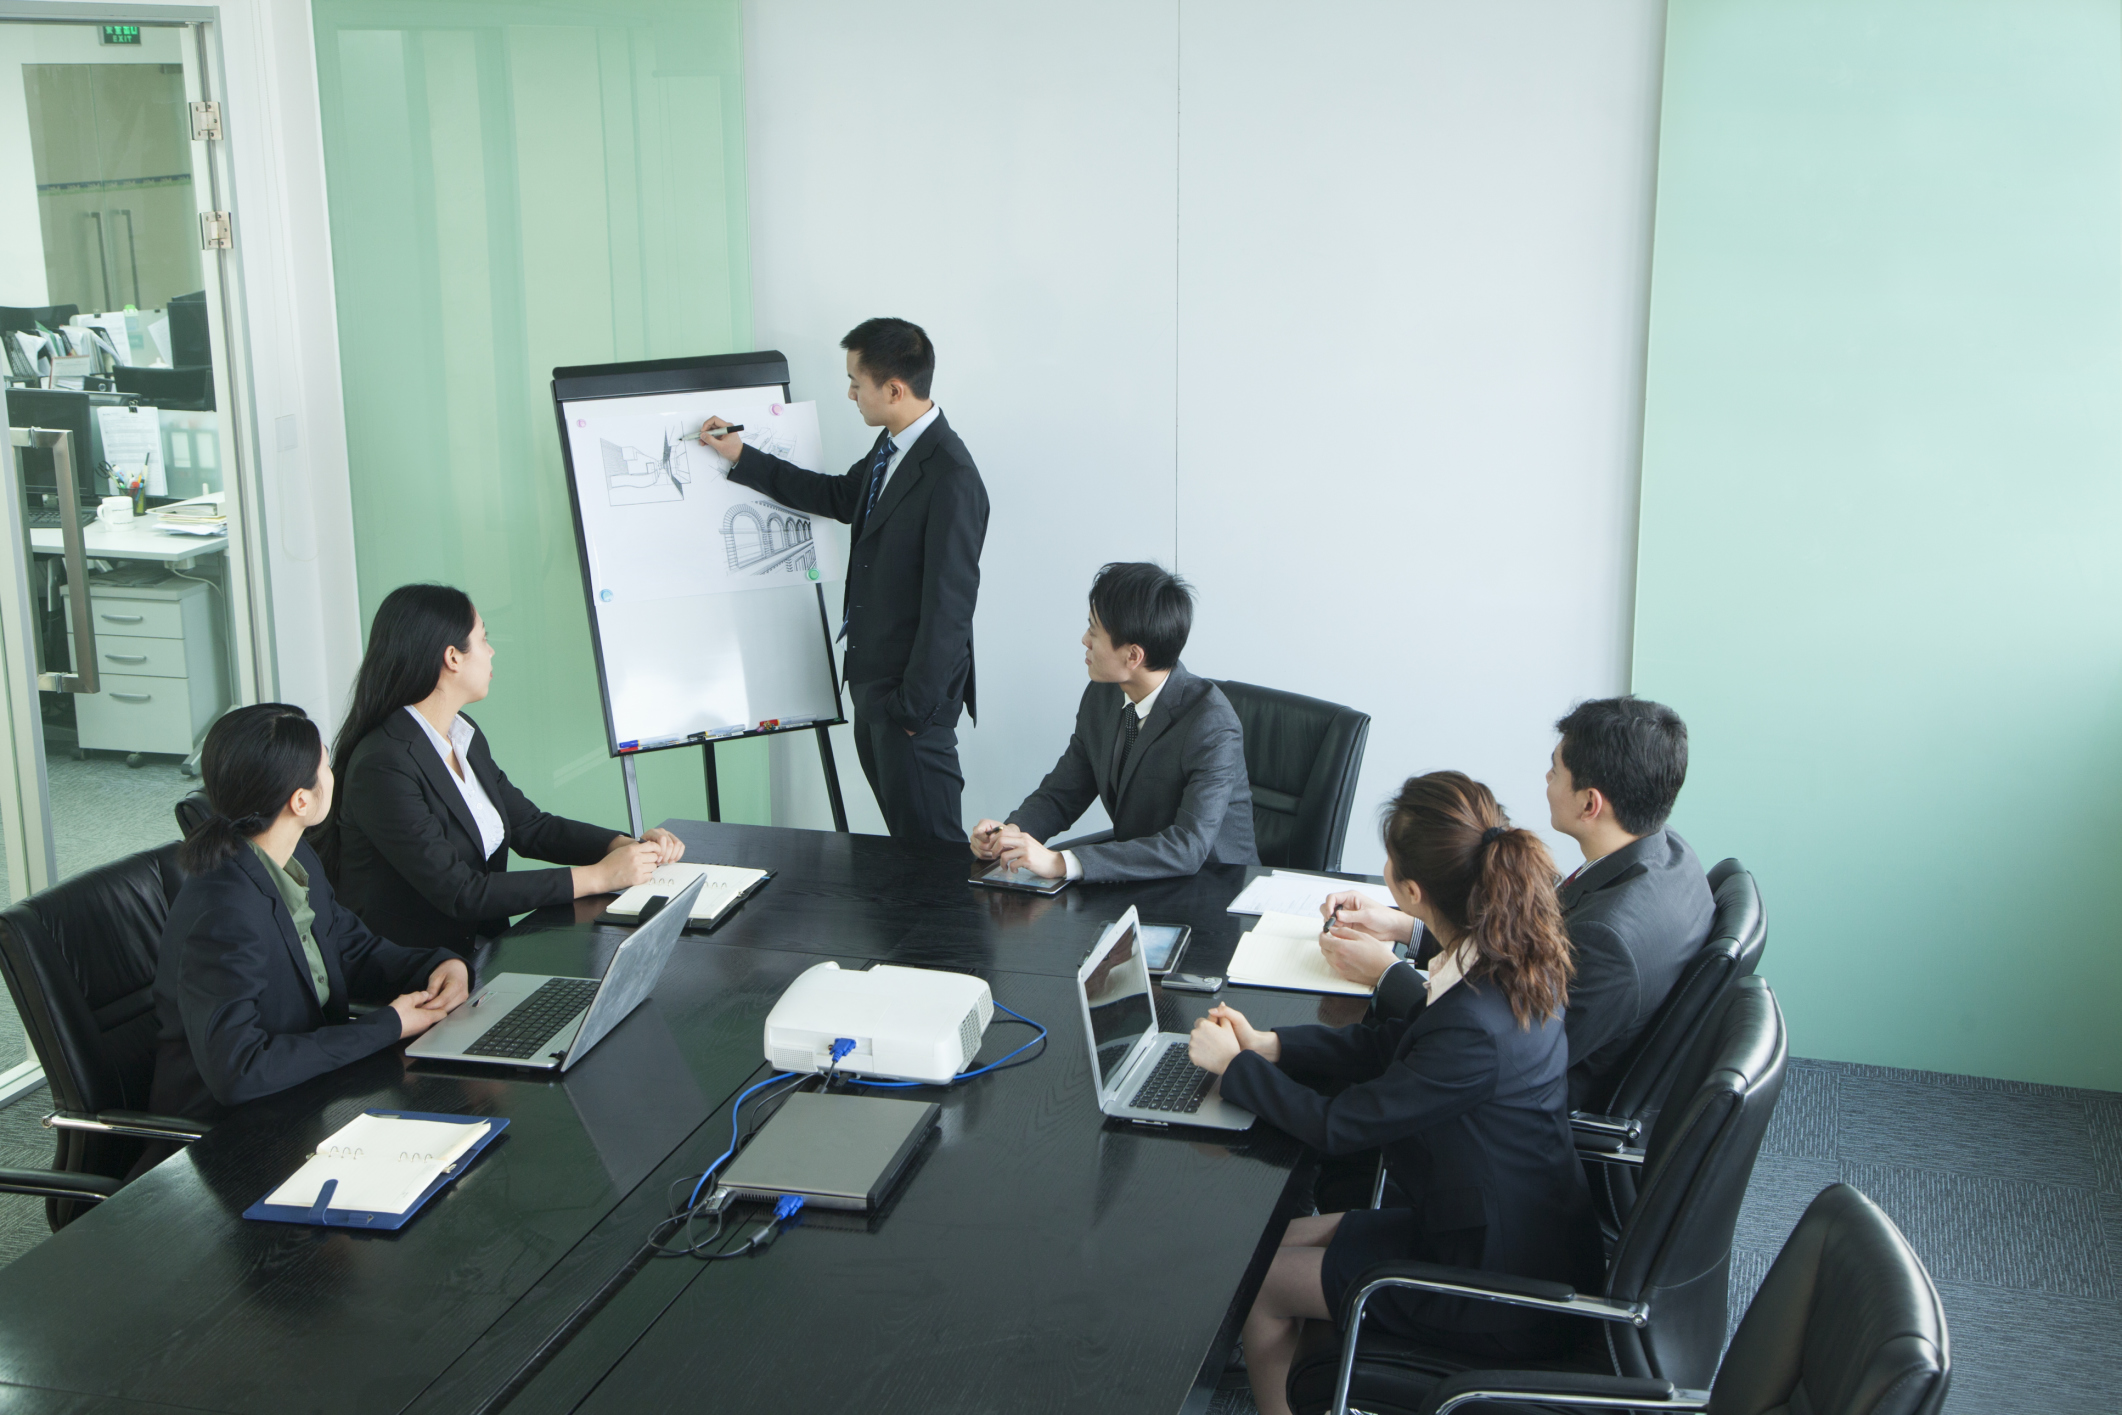 What Is the Purpose of an Oral Presentation? | Bizfluent